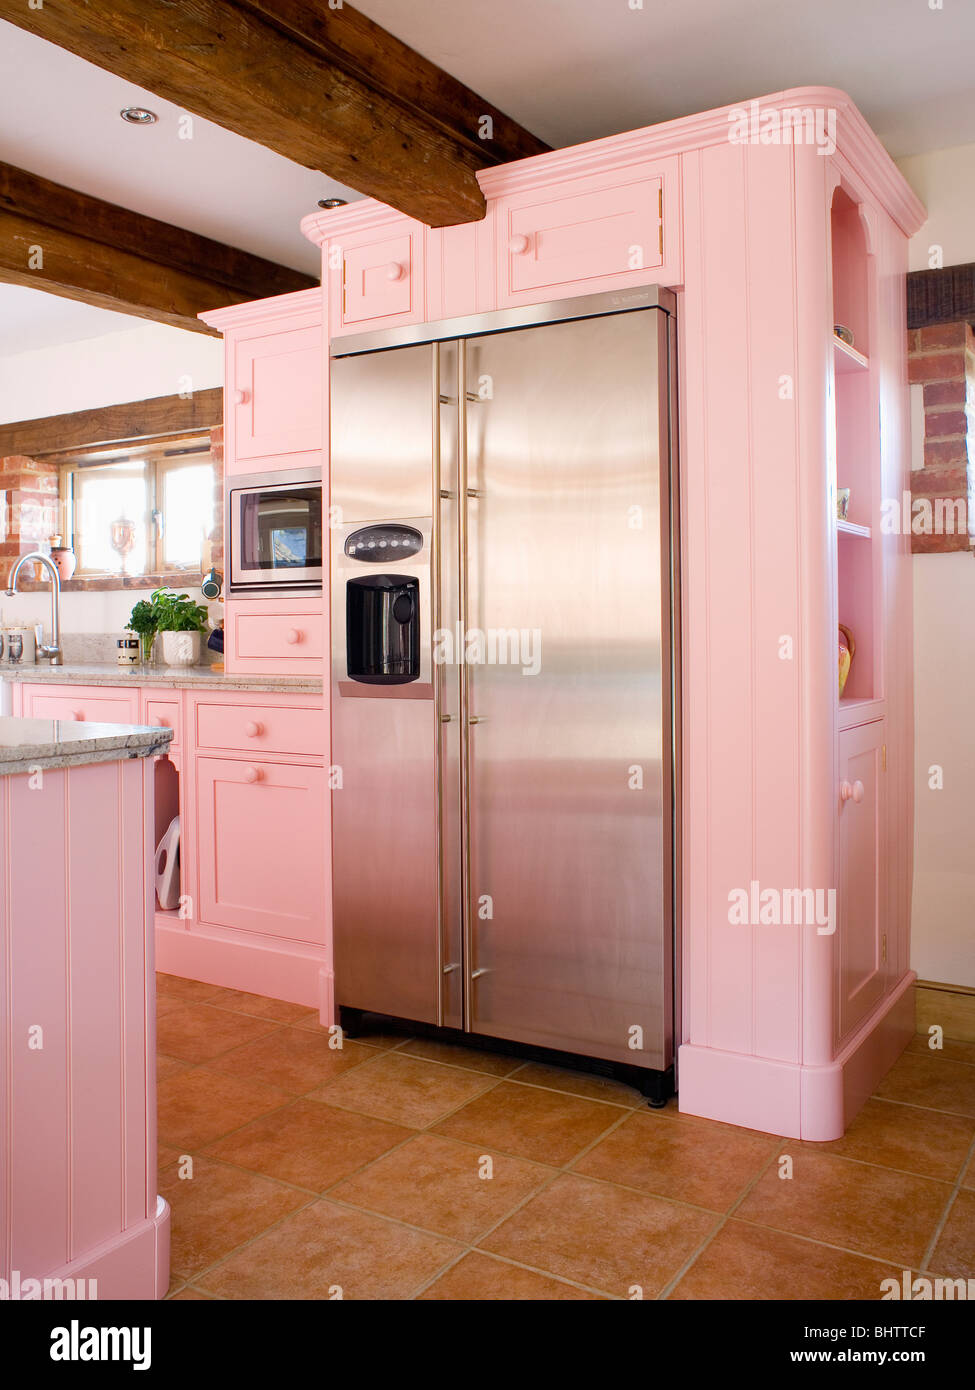 Captivating Large Stainless Steel American Style Fridge Freezer In Pastel Pink Fitted  Unit In Country Kitchen